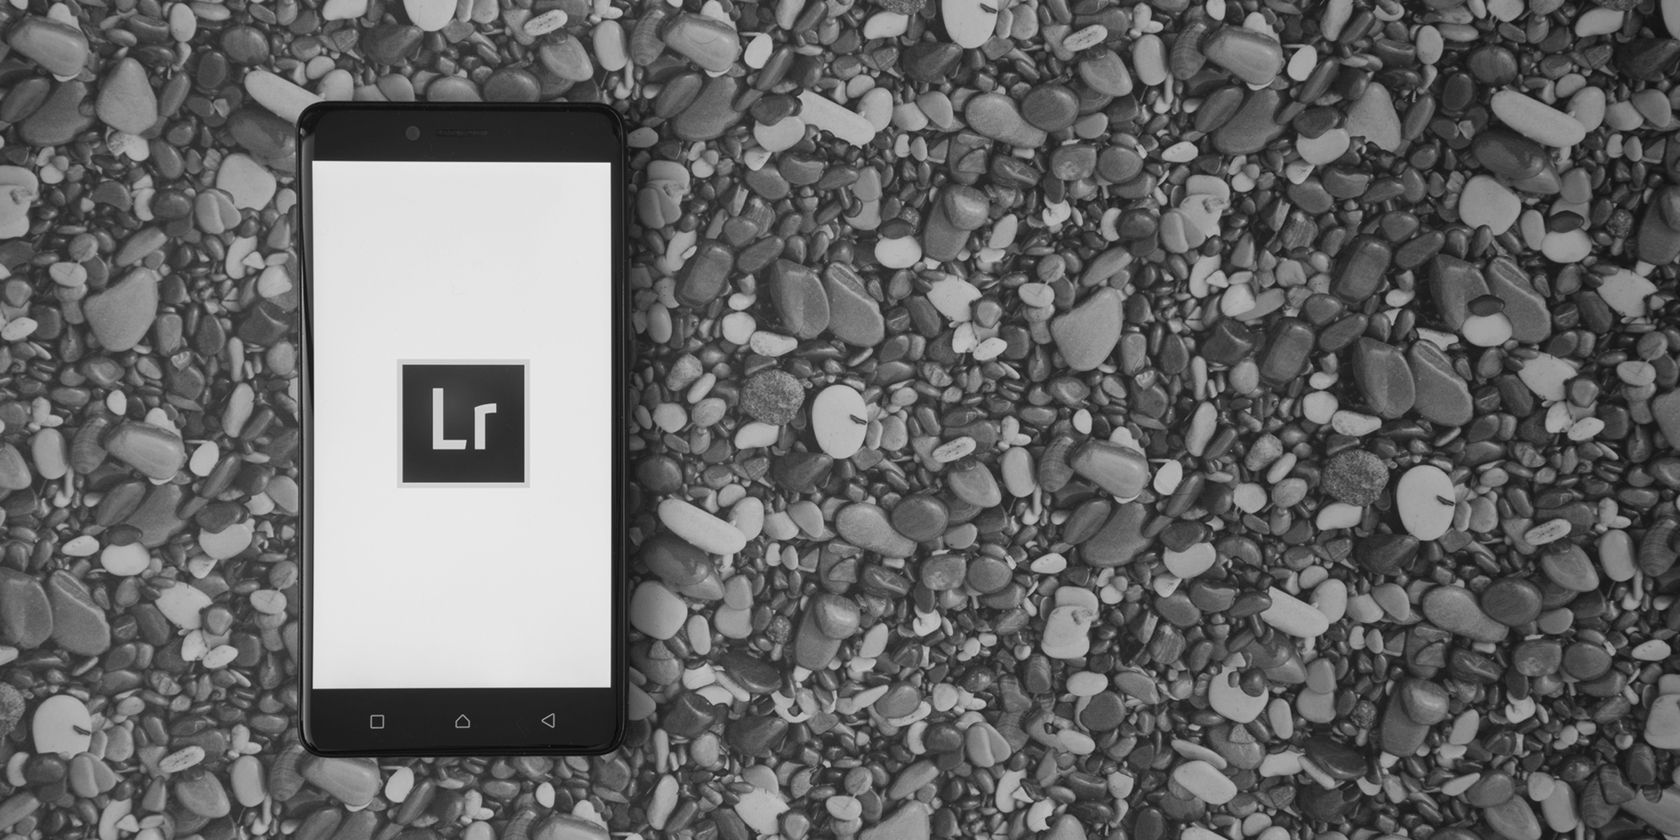 Lightroom Presets Smart Technology Sapphire Tri X Radeon R9 Fury 4g Hbm  Price Are The Photographers Backdoor For Retouching Hundreds Of Photos With A Single Click Adobe Cc And Classic Has